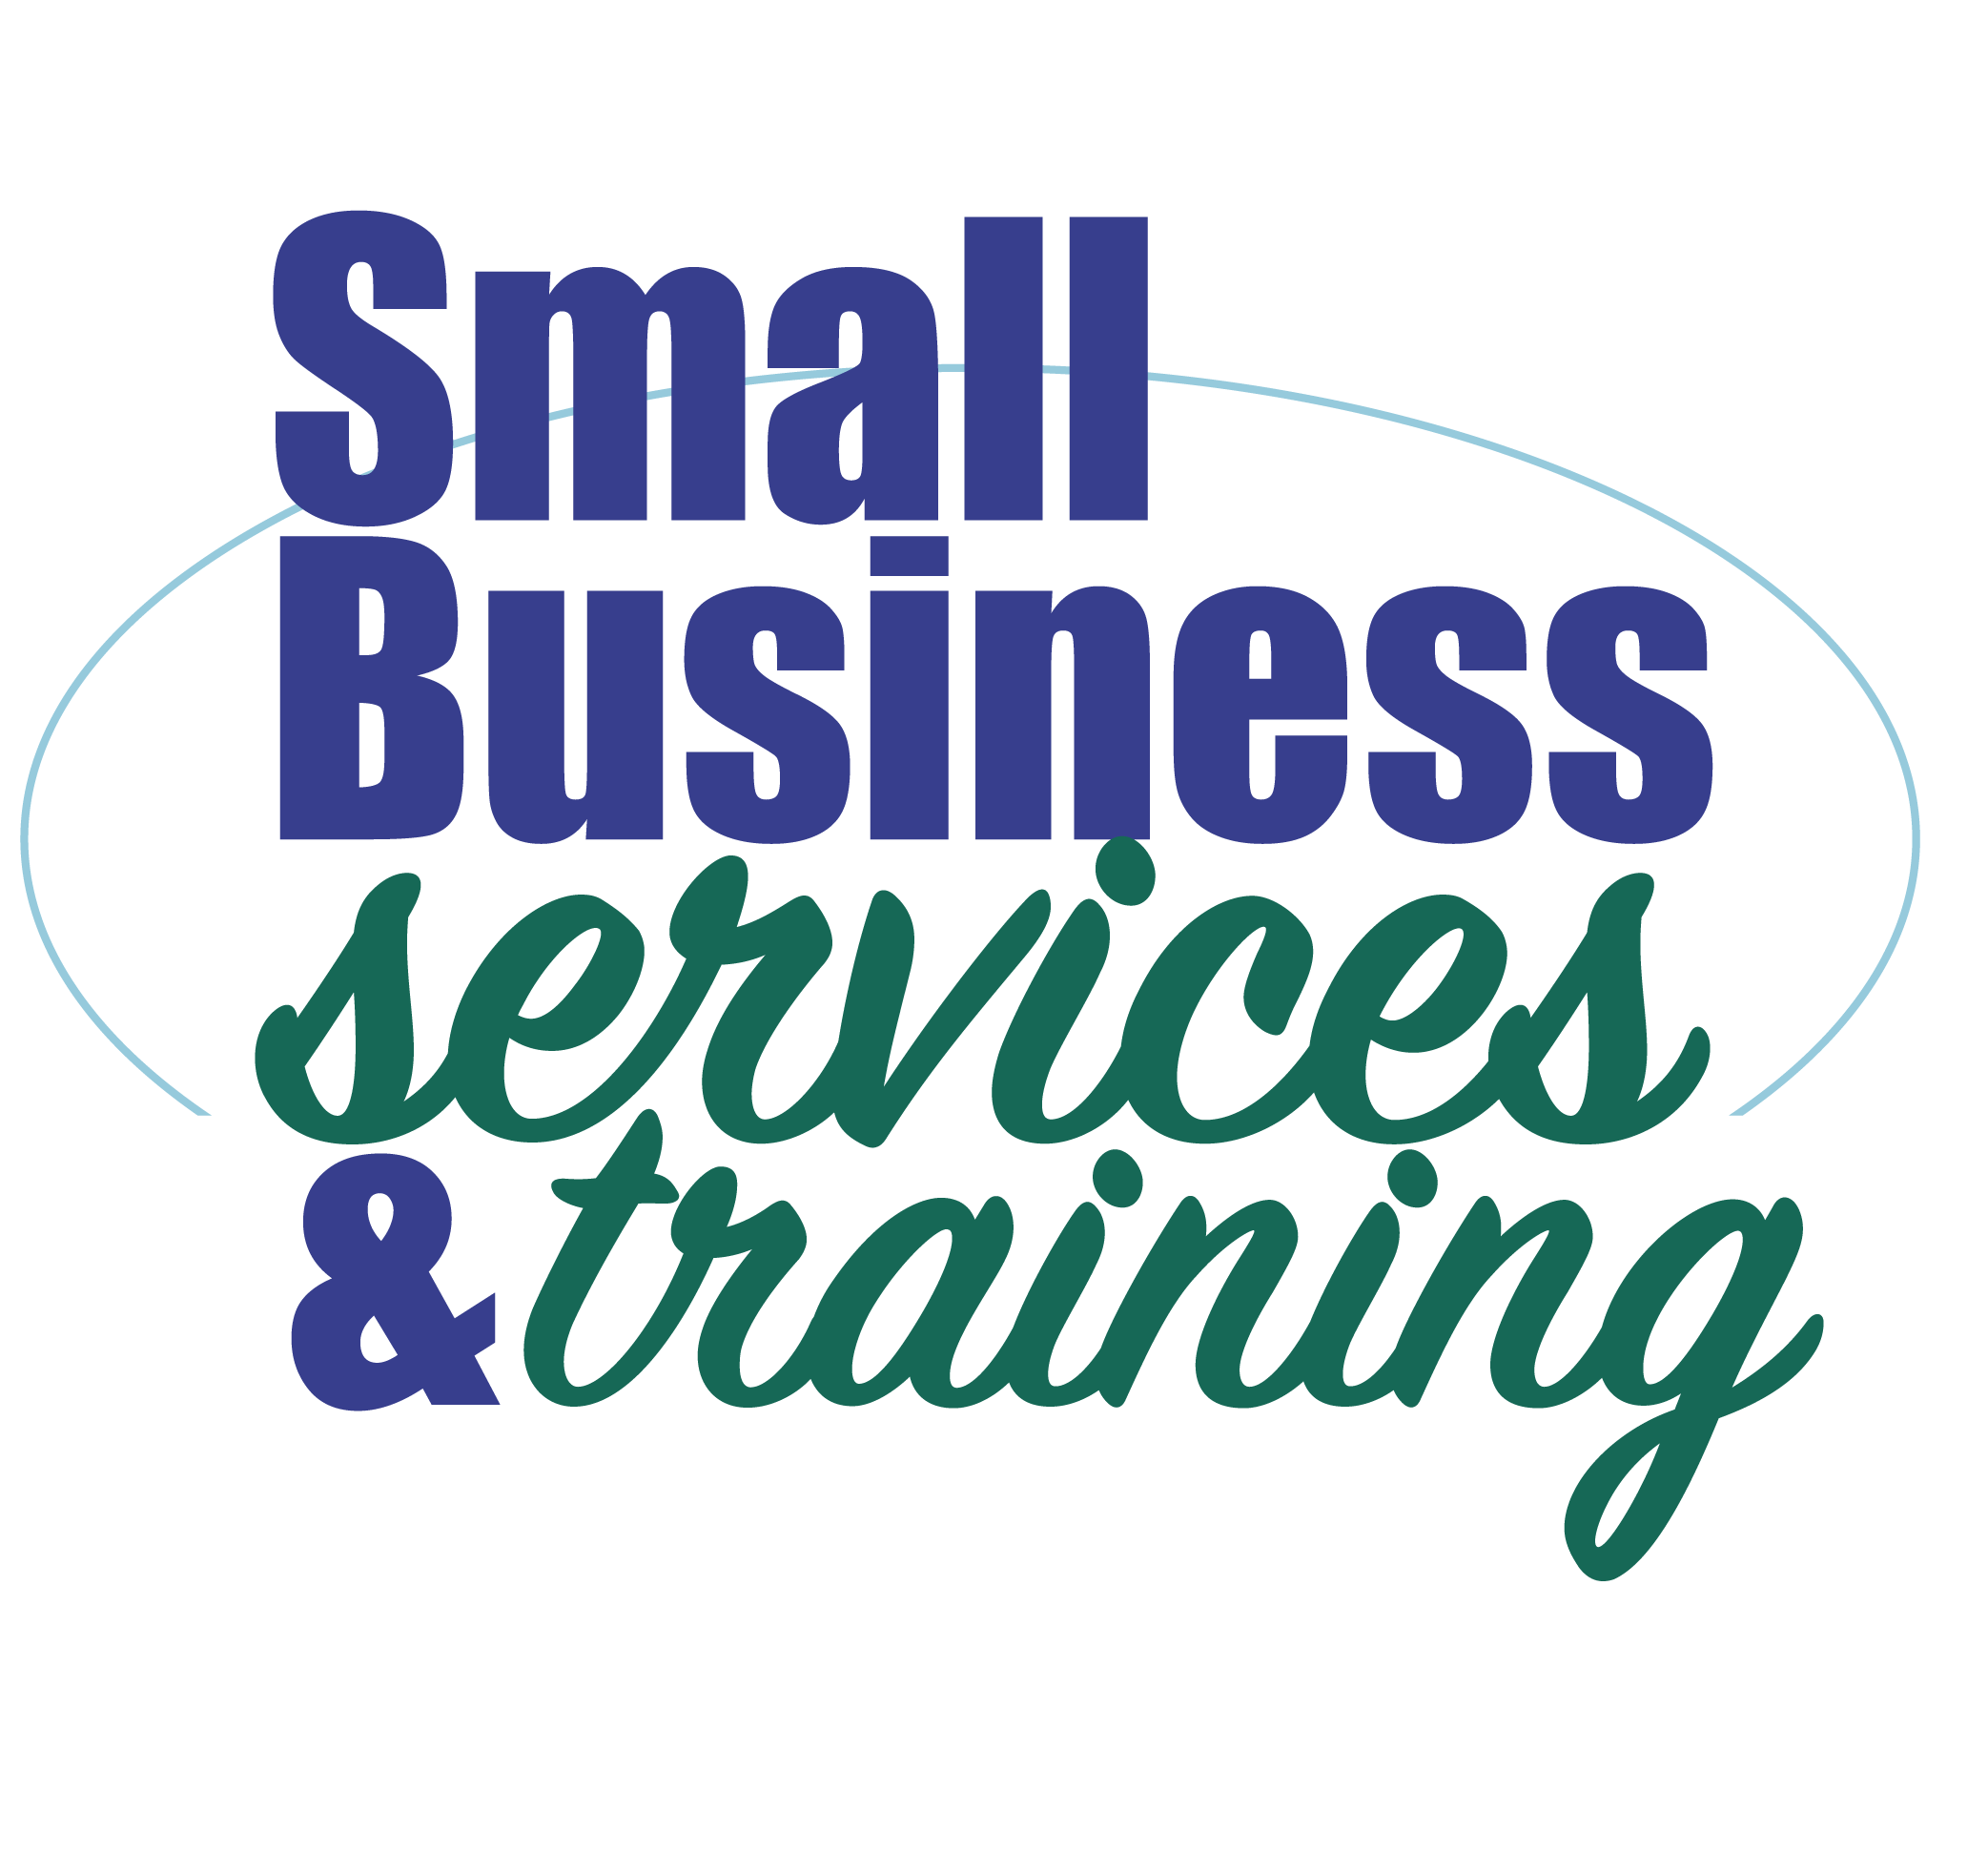 Small Business Services & Training